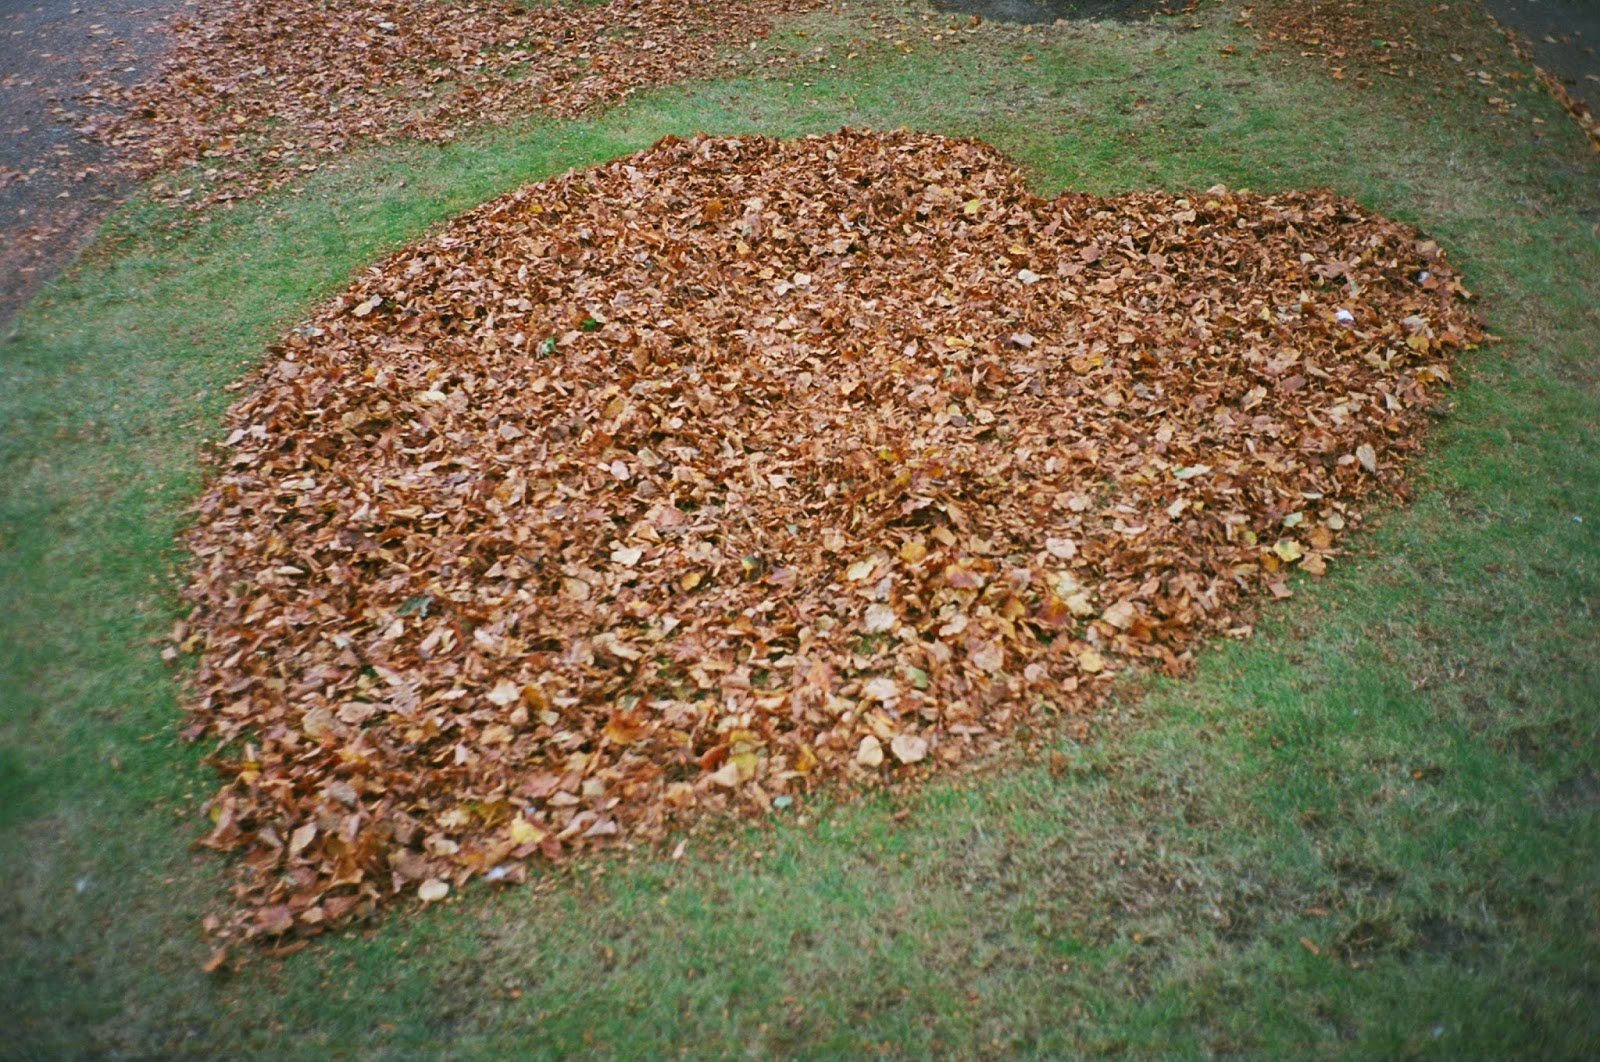 LOVE, SYMBOLS OF LOVE, SCULPTURE IN THE PARK, SITE SPECIFIC ART INSTALLATION, OUTSIDER ART, AUTUMN LEAVES, © VAC 100 DAYS 4 MILLION CONVERSATIONS